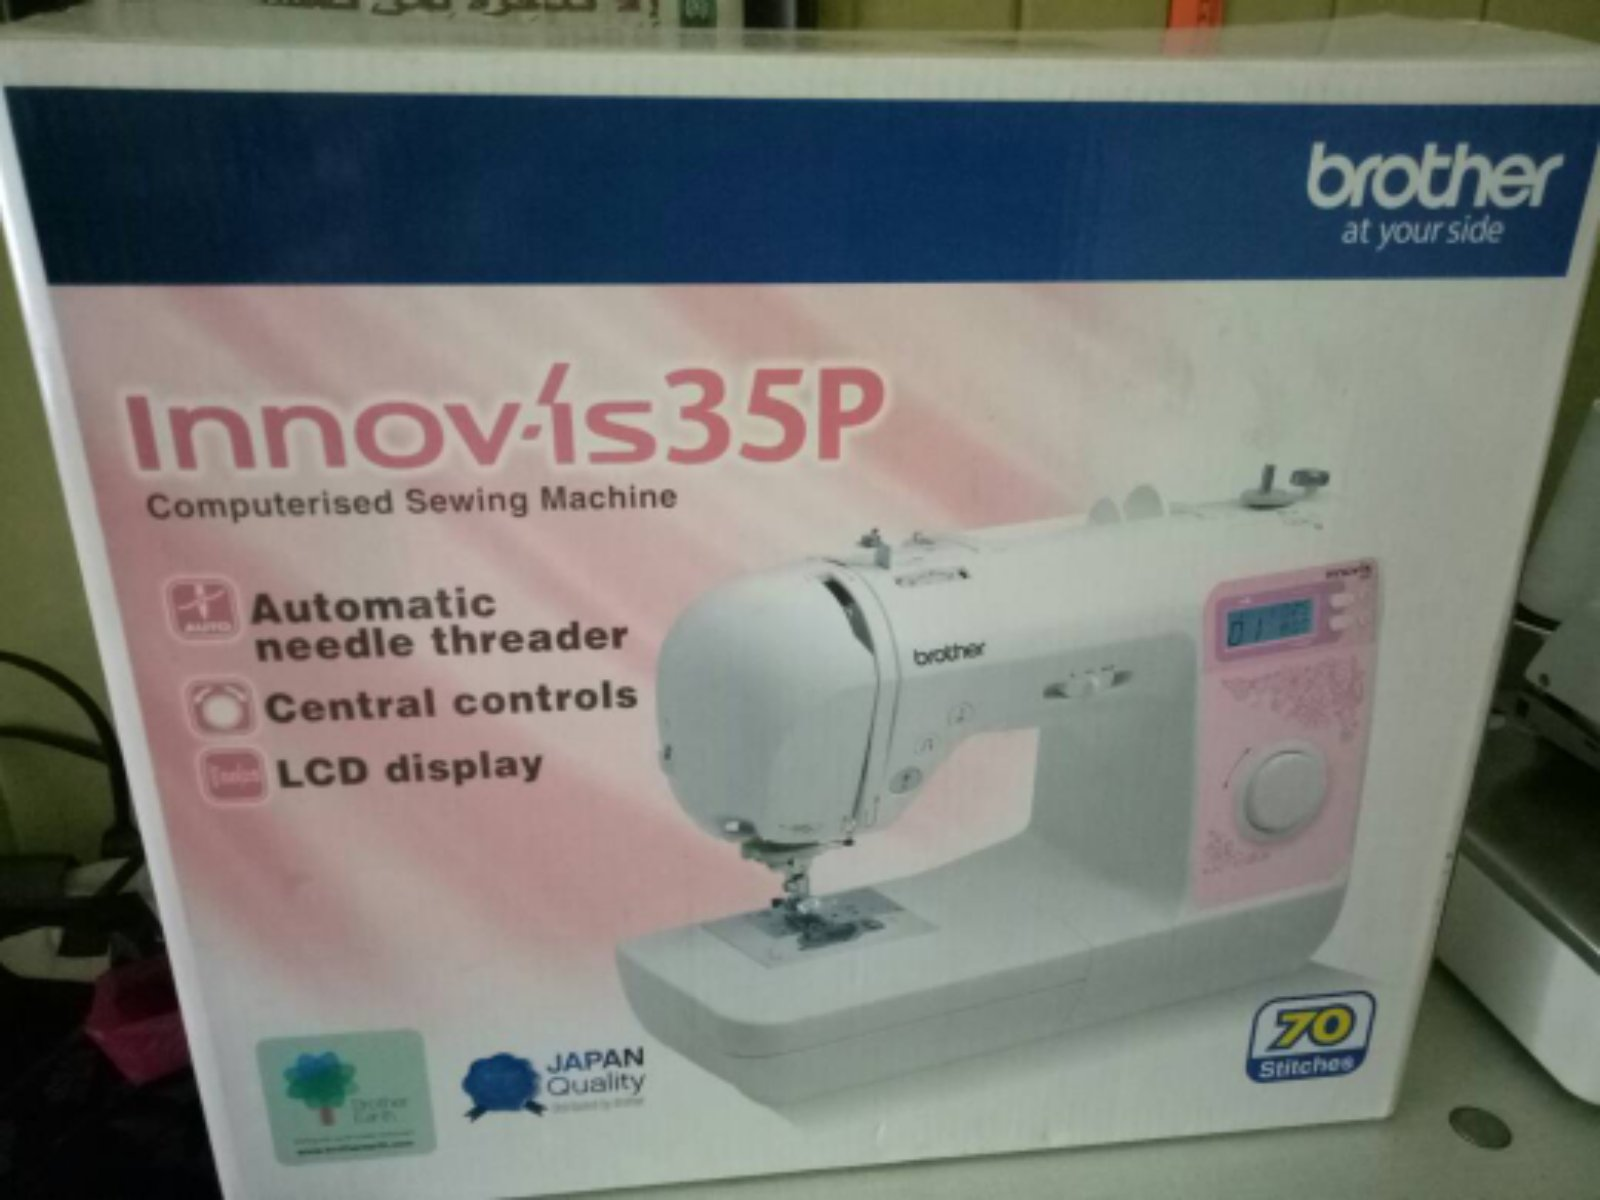 Second Hand Sewing Machine!